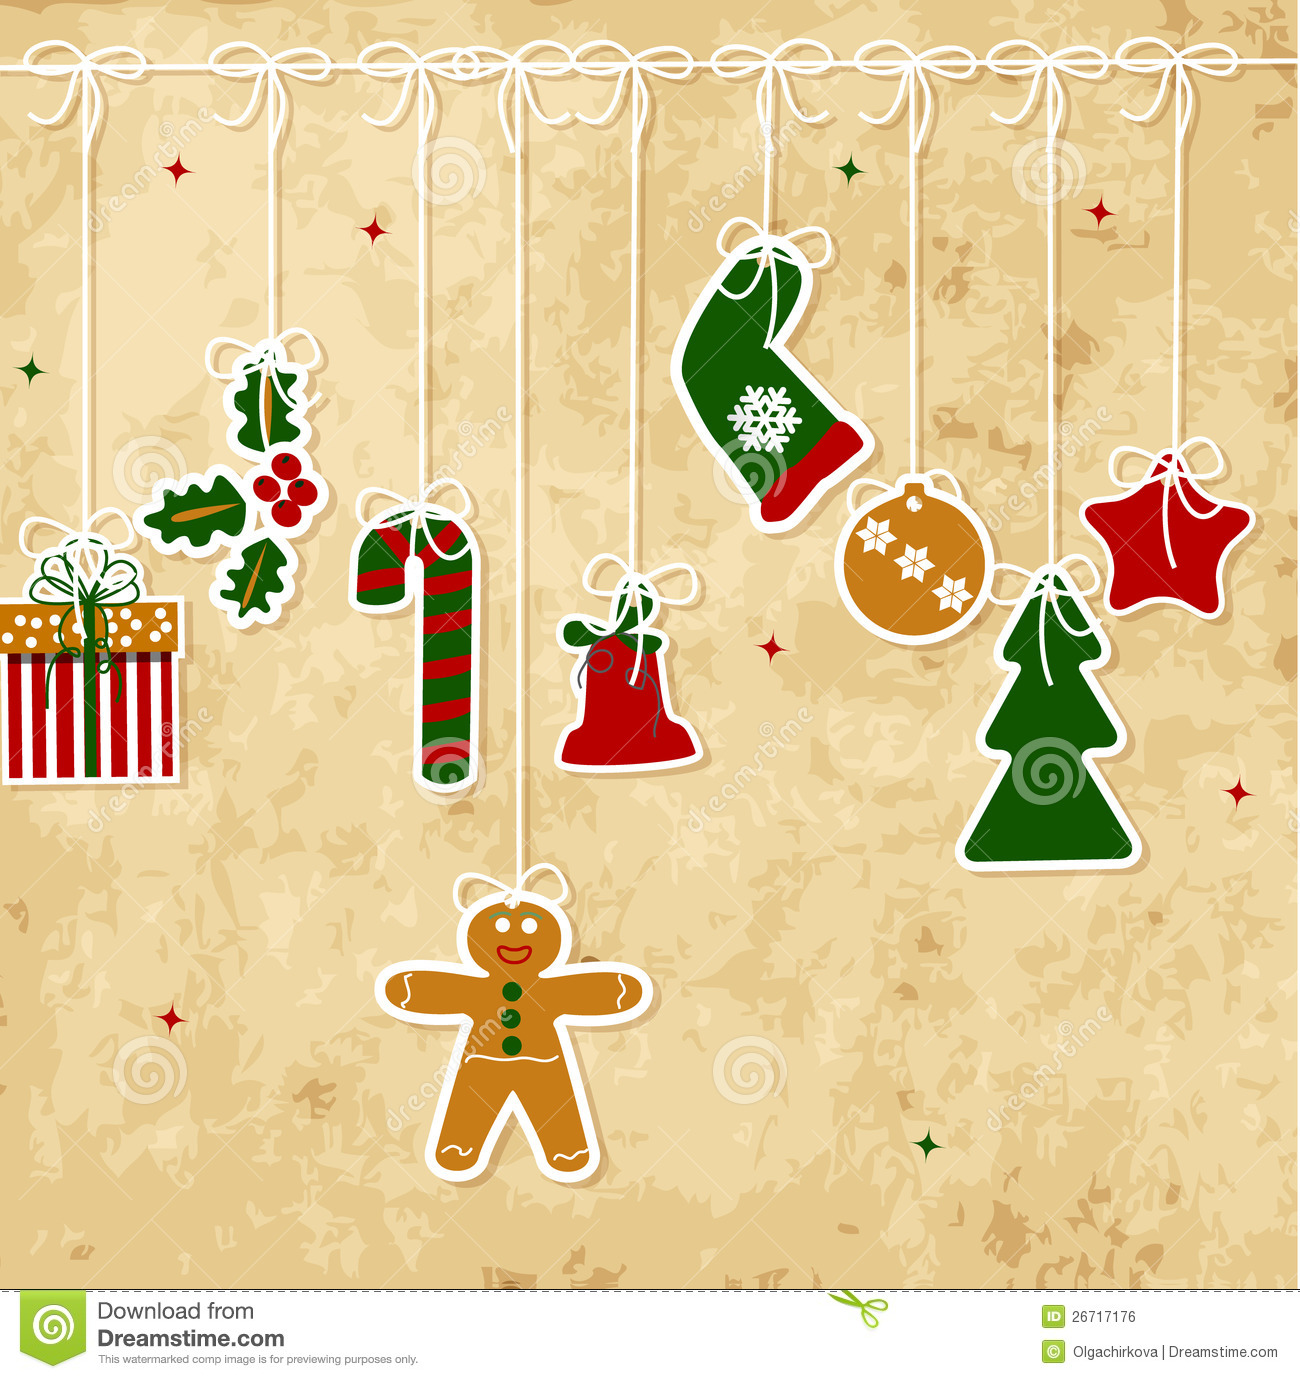 Vintage Christmas Card Royalty Free Stock Image - Image: 26717176